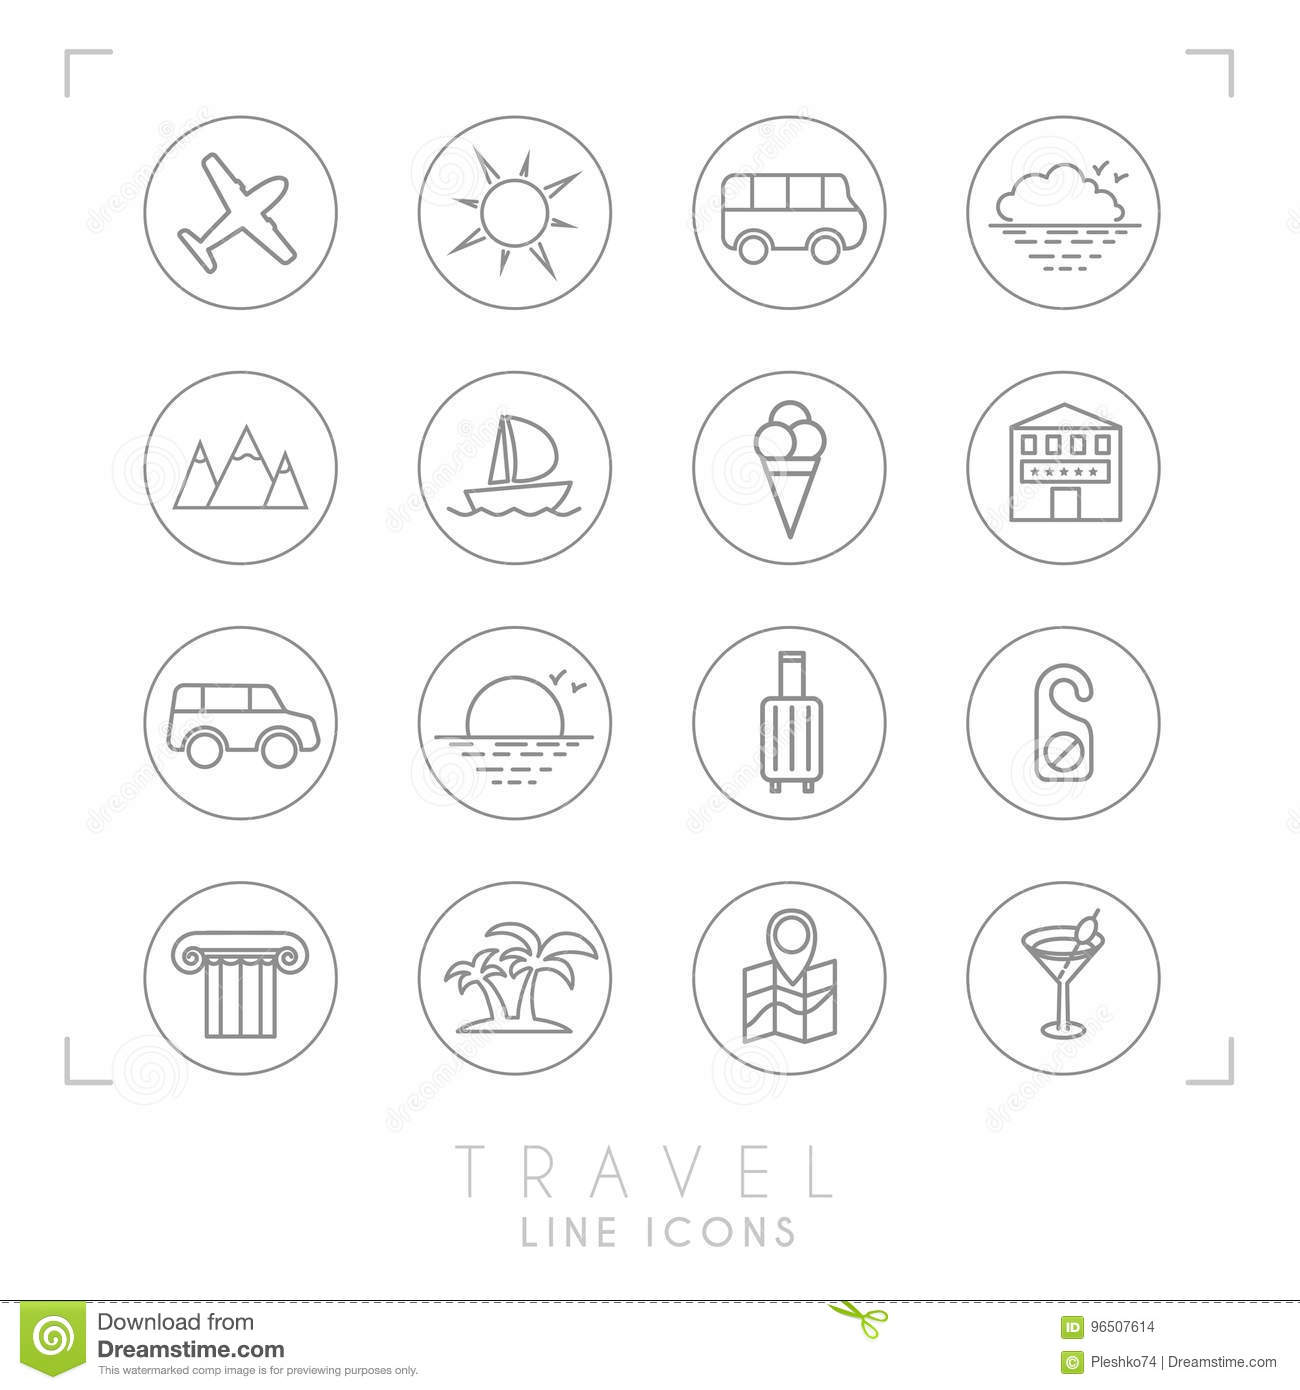 Outline travel line icons set in circles. Airplane, sun, bus, cloud horizon, mountains, yacht, hotel, rent car, luggage, do not di